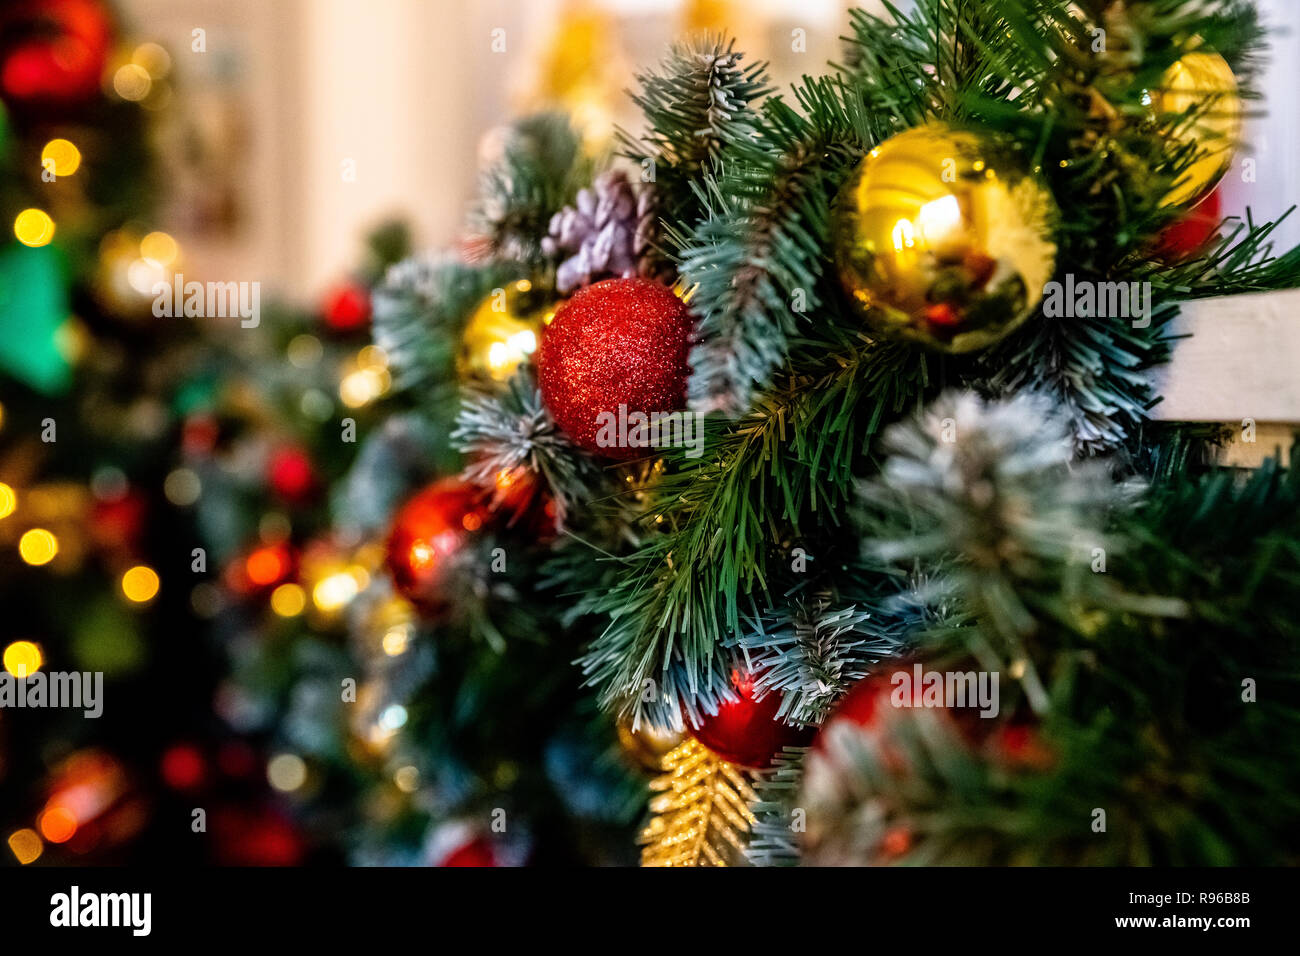 Decorative garland from christmas tree branches and cones. home decorated for winter holidays, little red and gold baubles. Copy space for wishes.Selective focus. Colorful christmas decorations.Happy new year.Home decor. - Stock Image